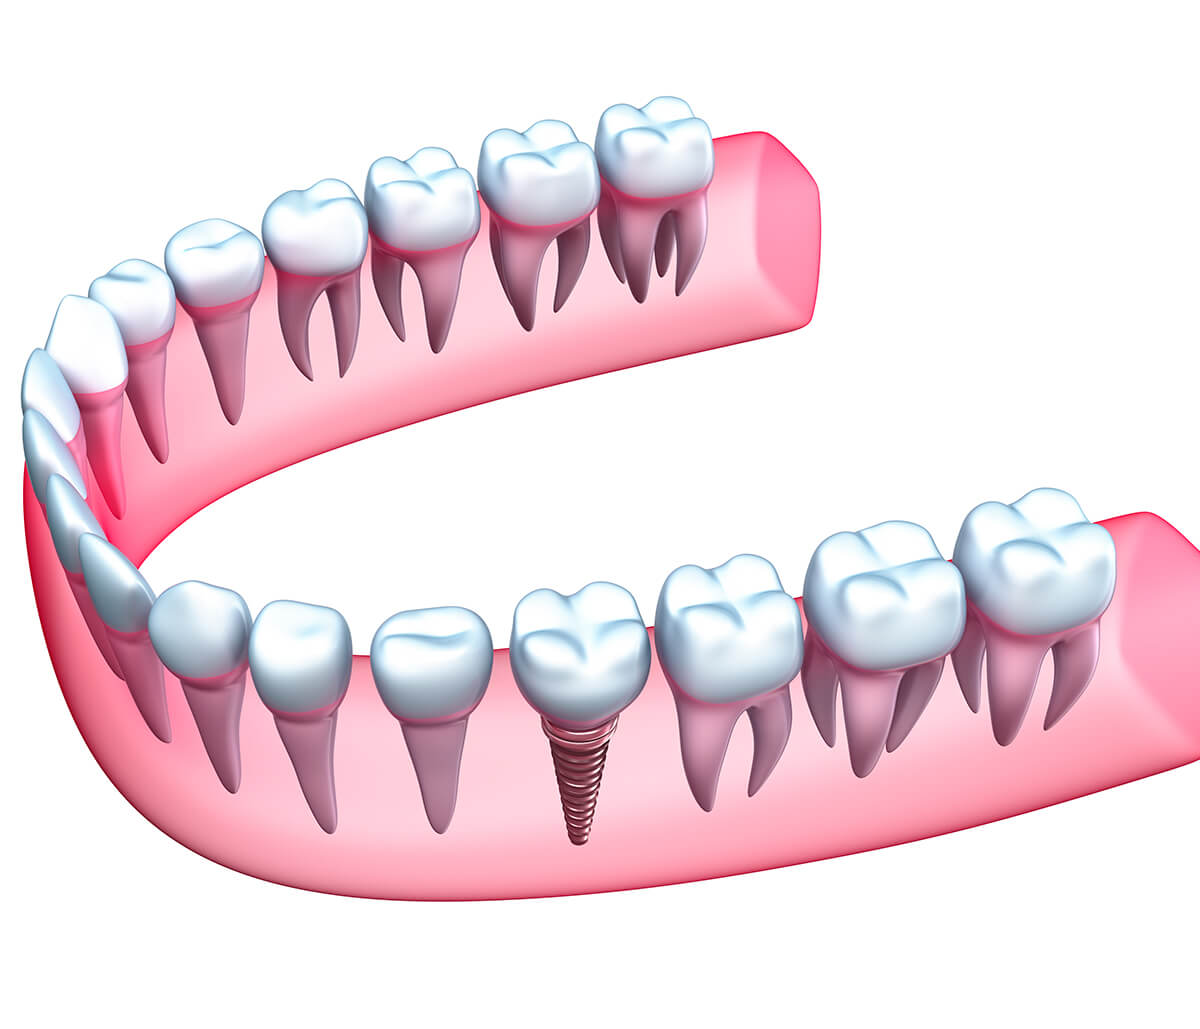 Implant Based Dental Restorations in Rochester Area